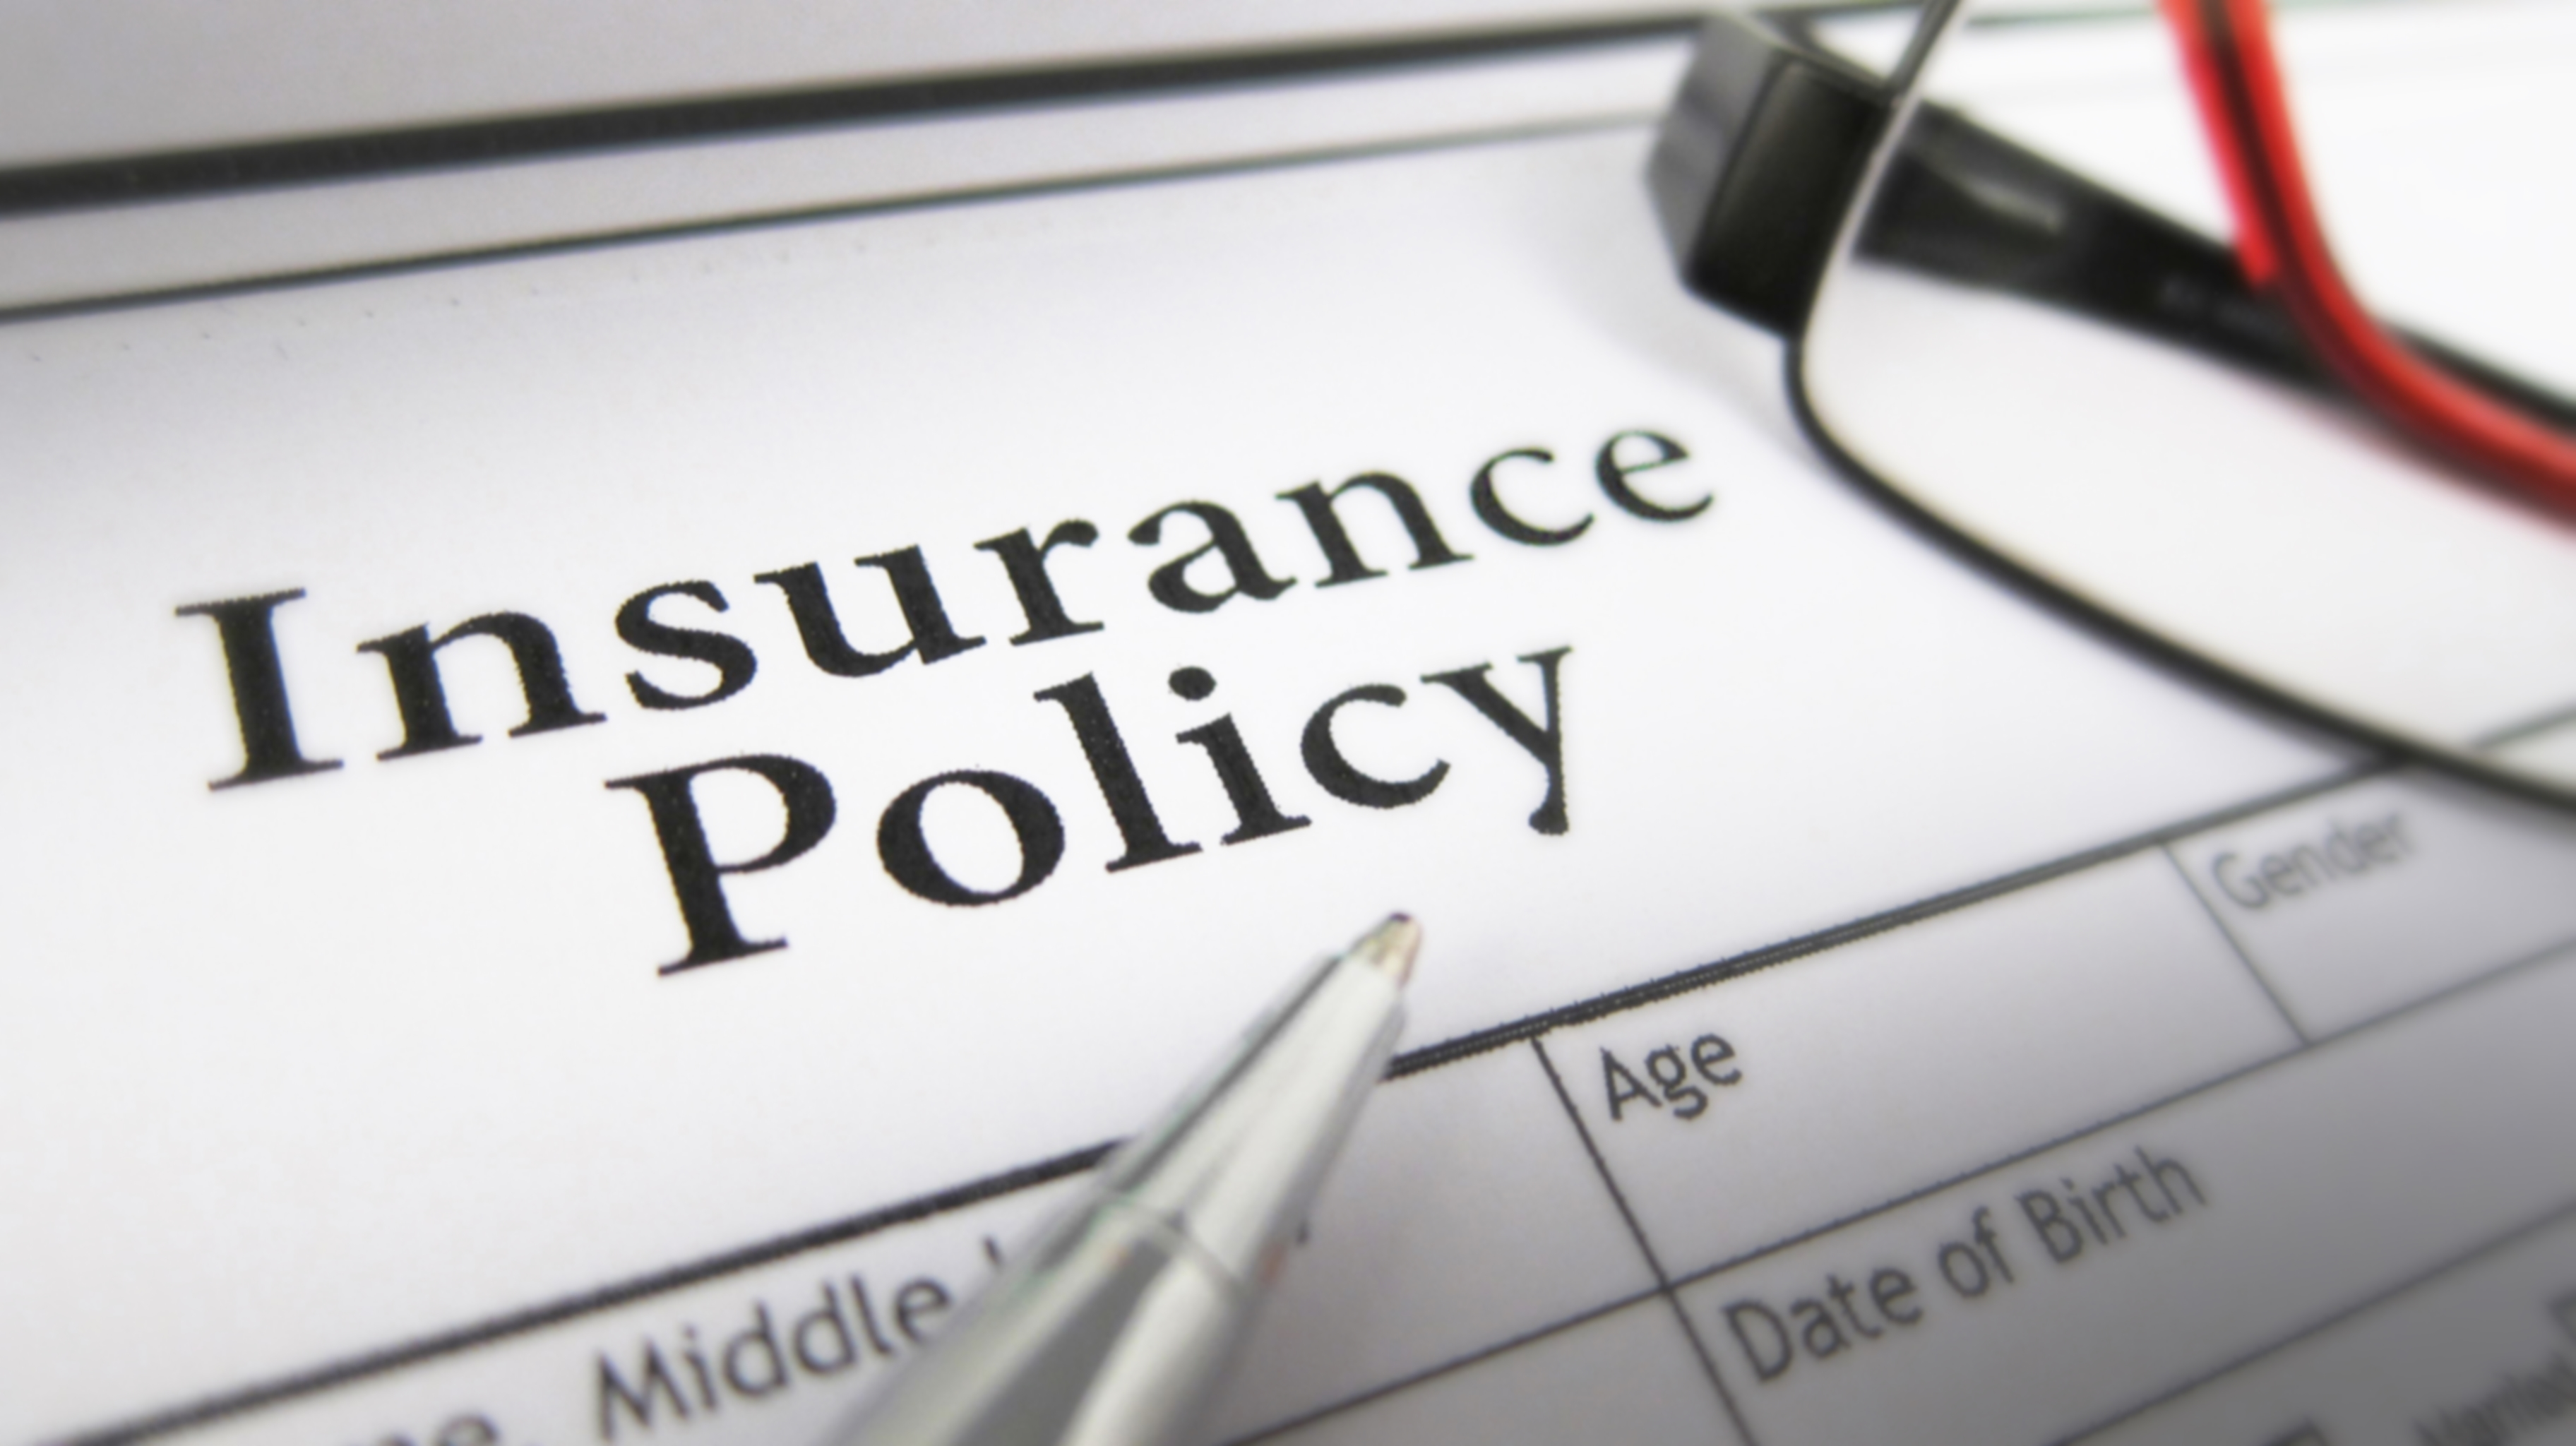 What You Should Know Before Hiring a Property Insurance Attorney